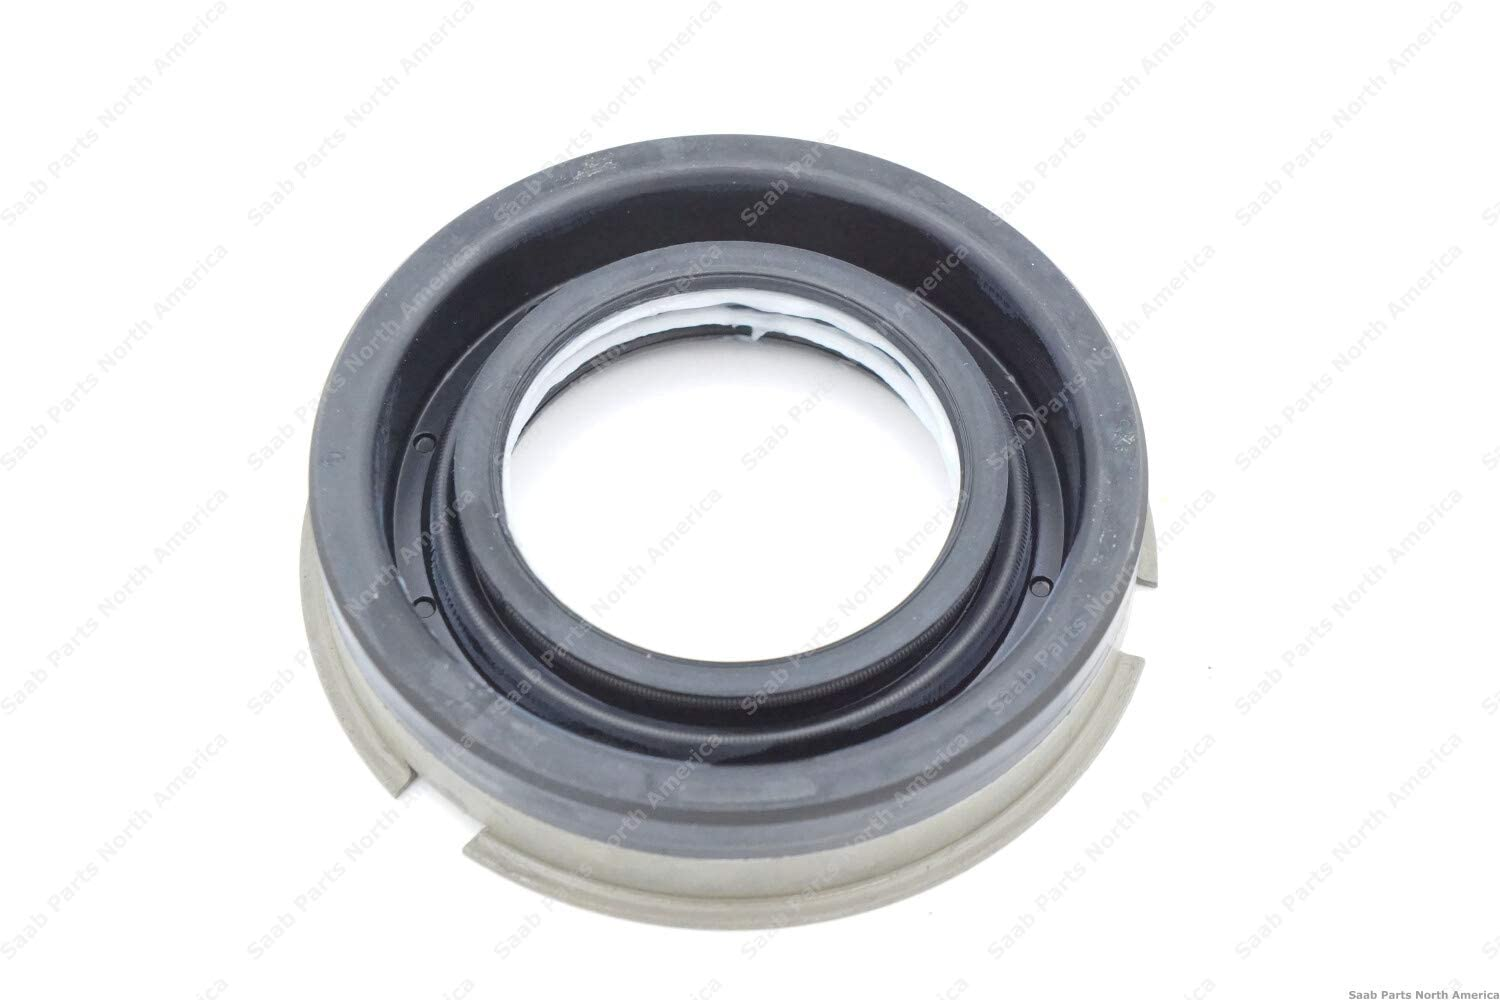 Genuine OEM Rear Drive Axle for Max 72% OFF Shaft 20986535 Saab Seal 5 ☆ very popular